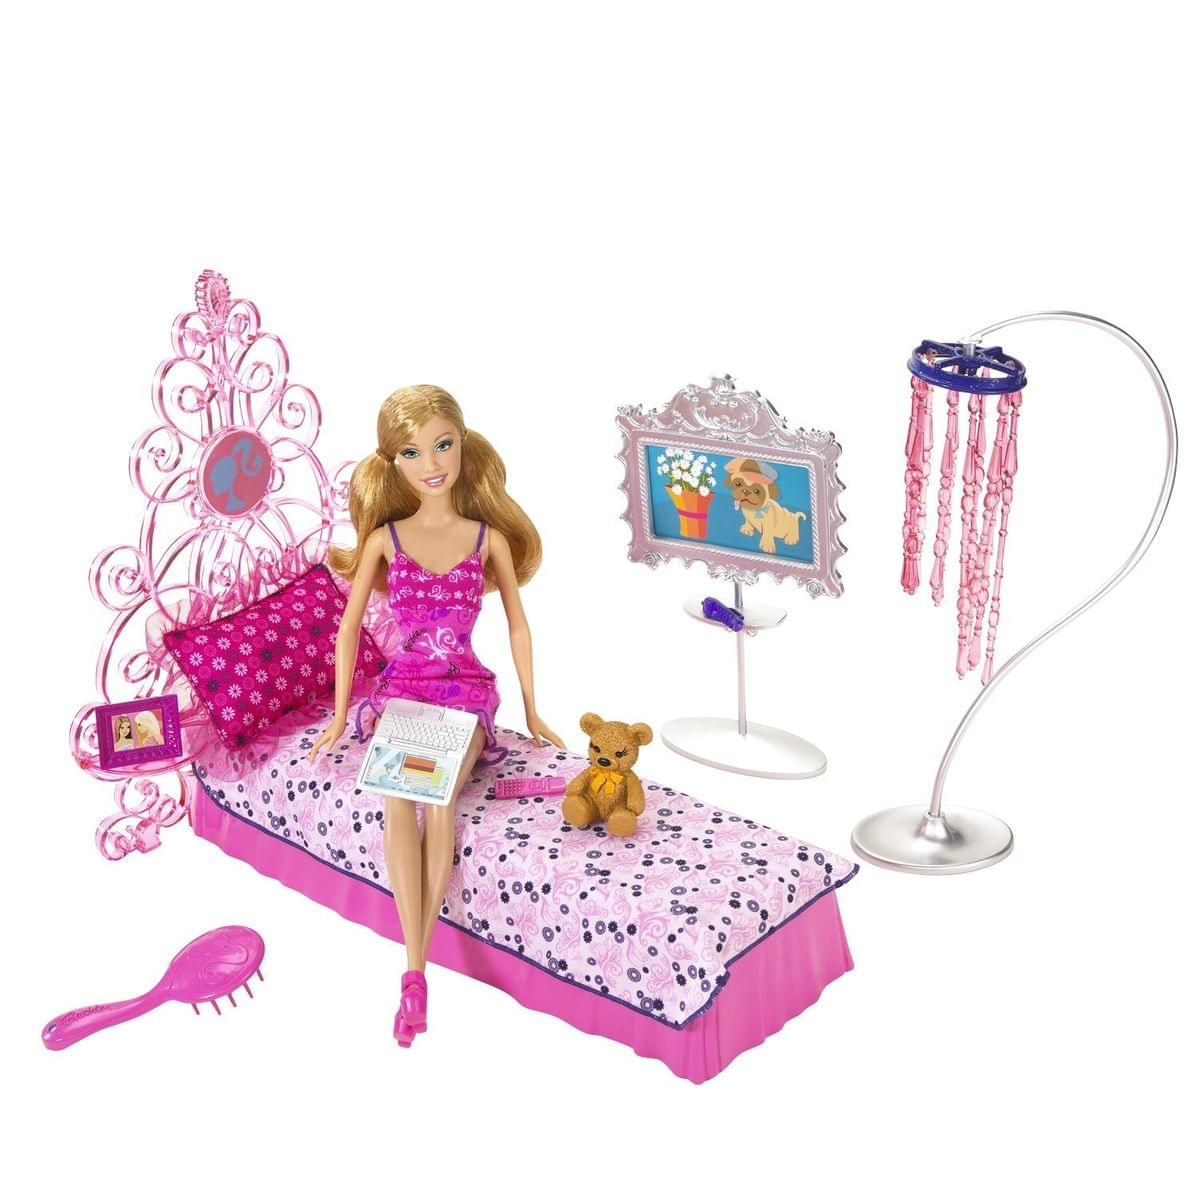 Barbie My House Dream Bedroom and Barbie Doll